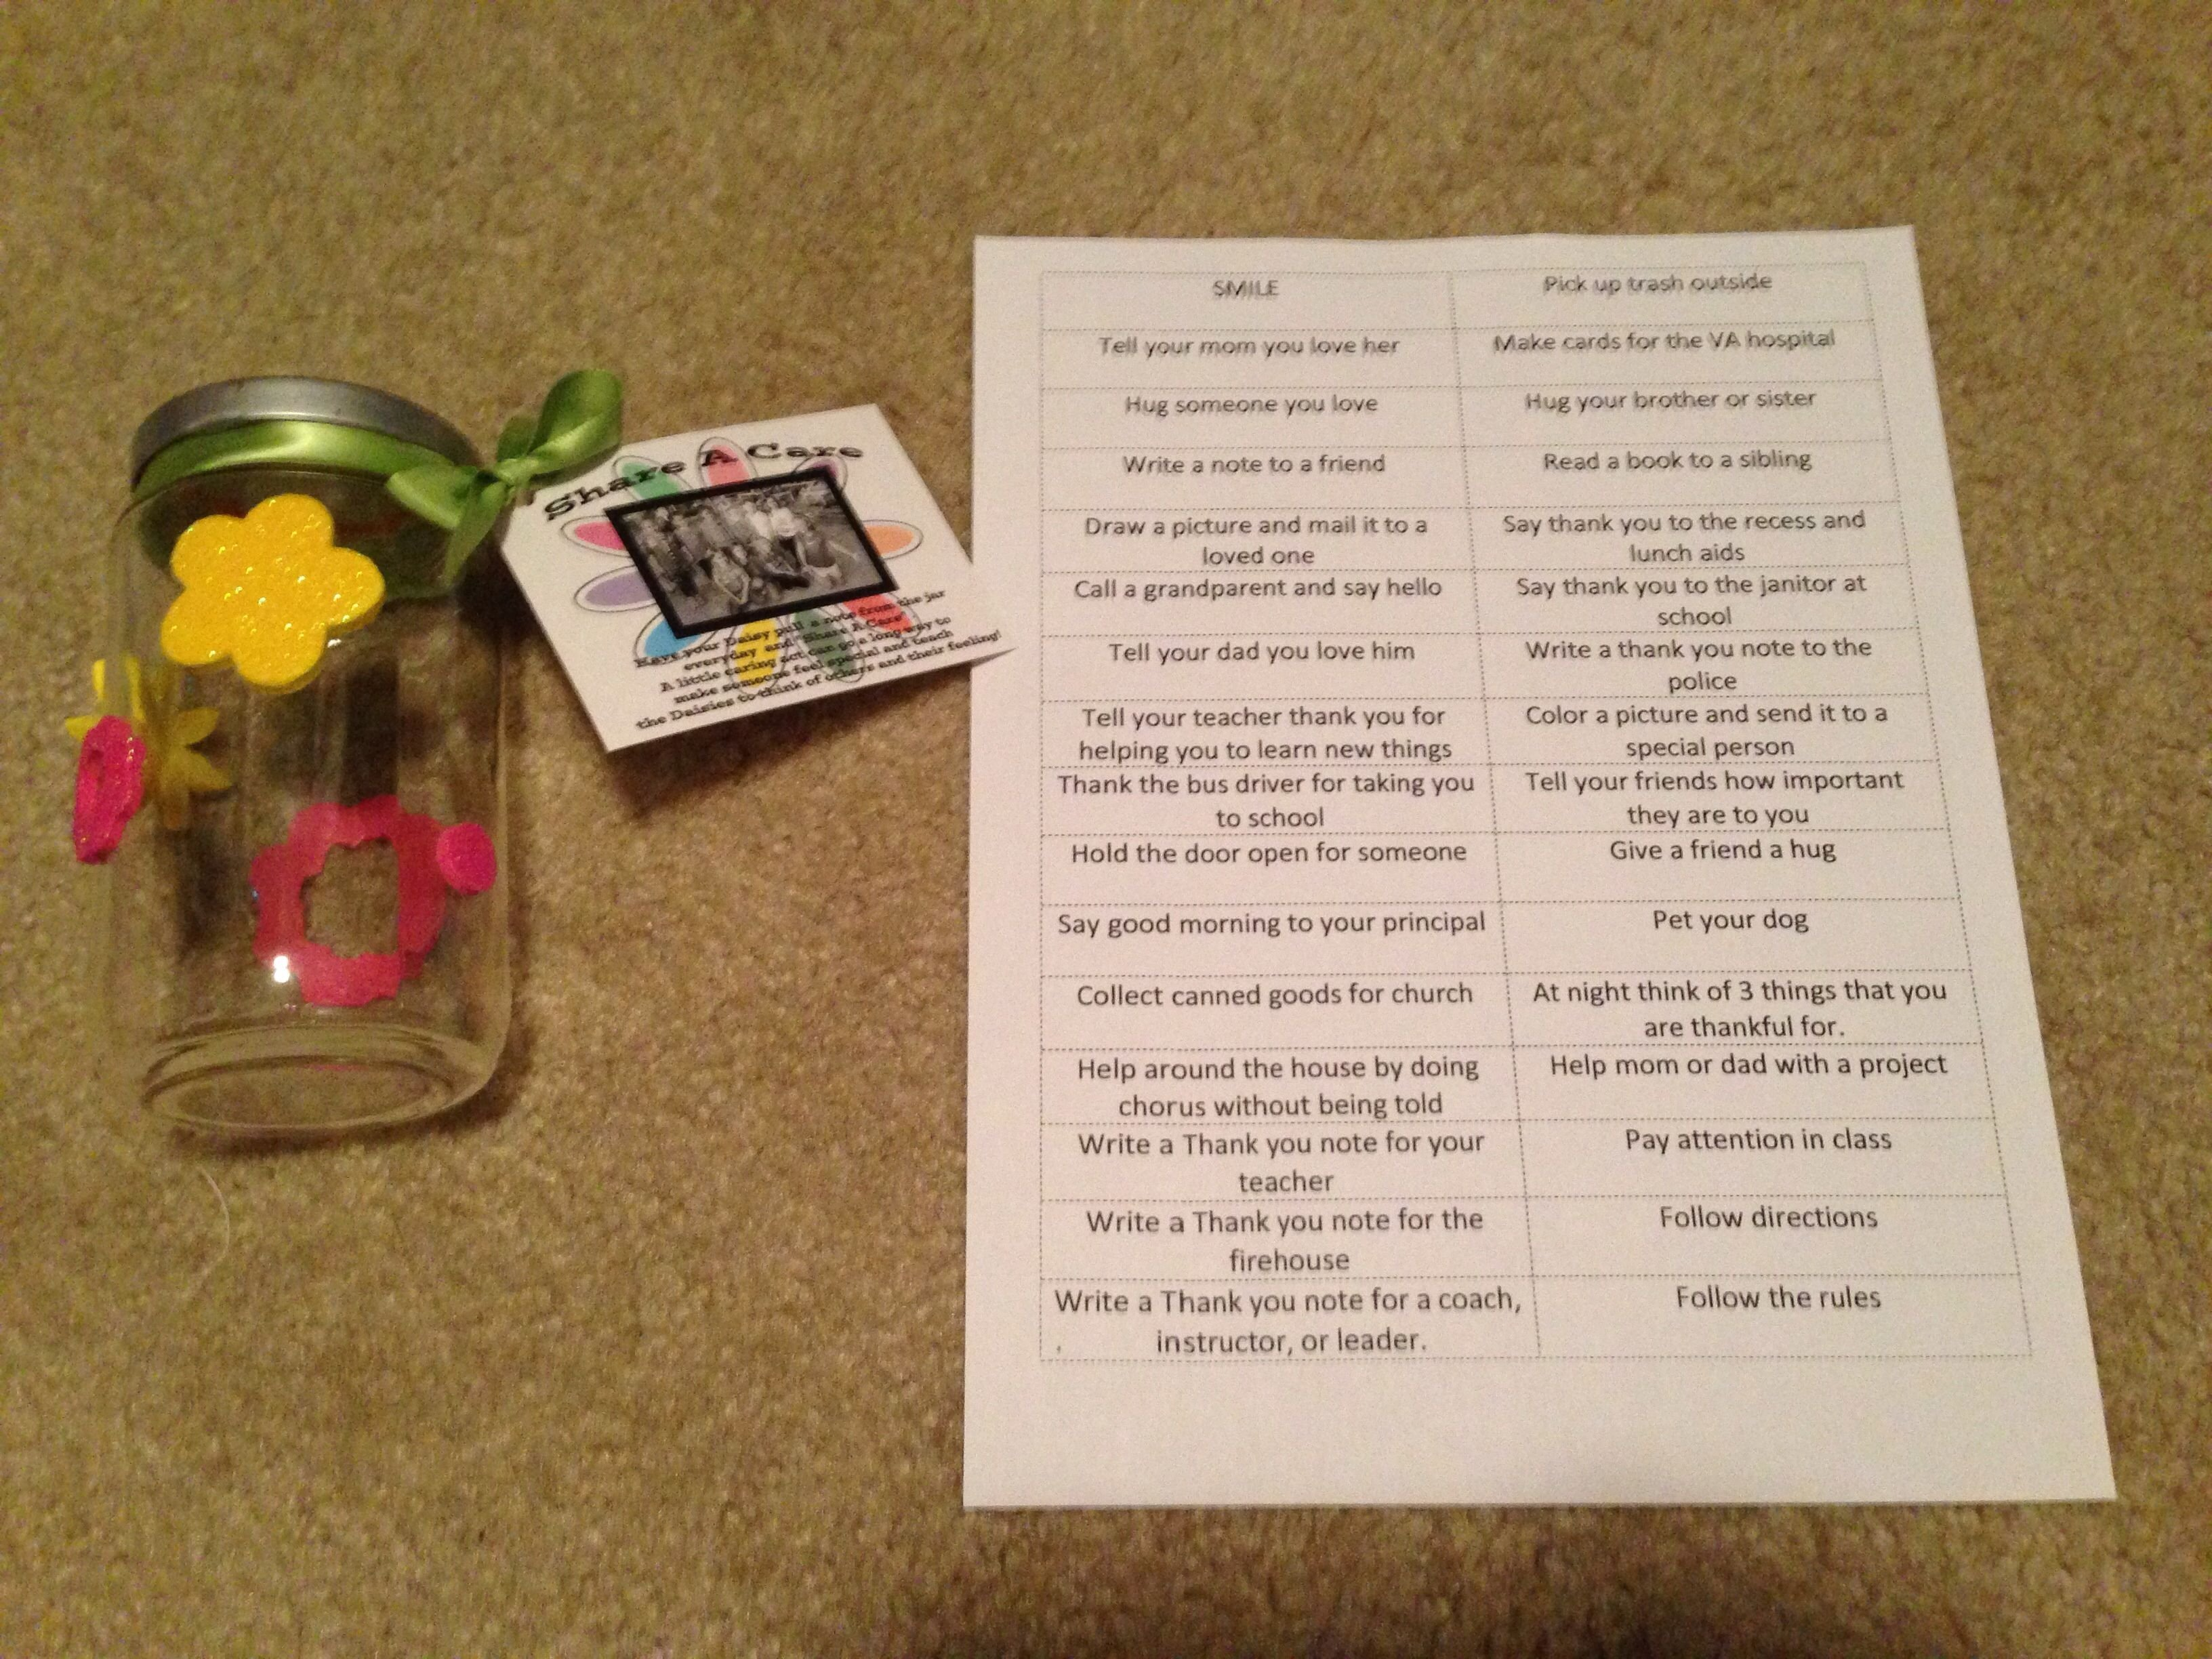 10 Attractive Considerate And Caring Daisy Petal Ideas for the zinni petal considerate and caring make a share a care